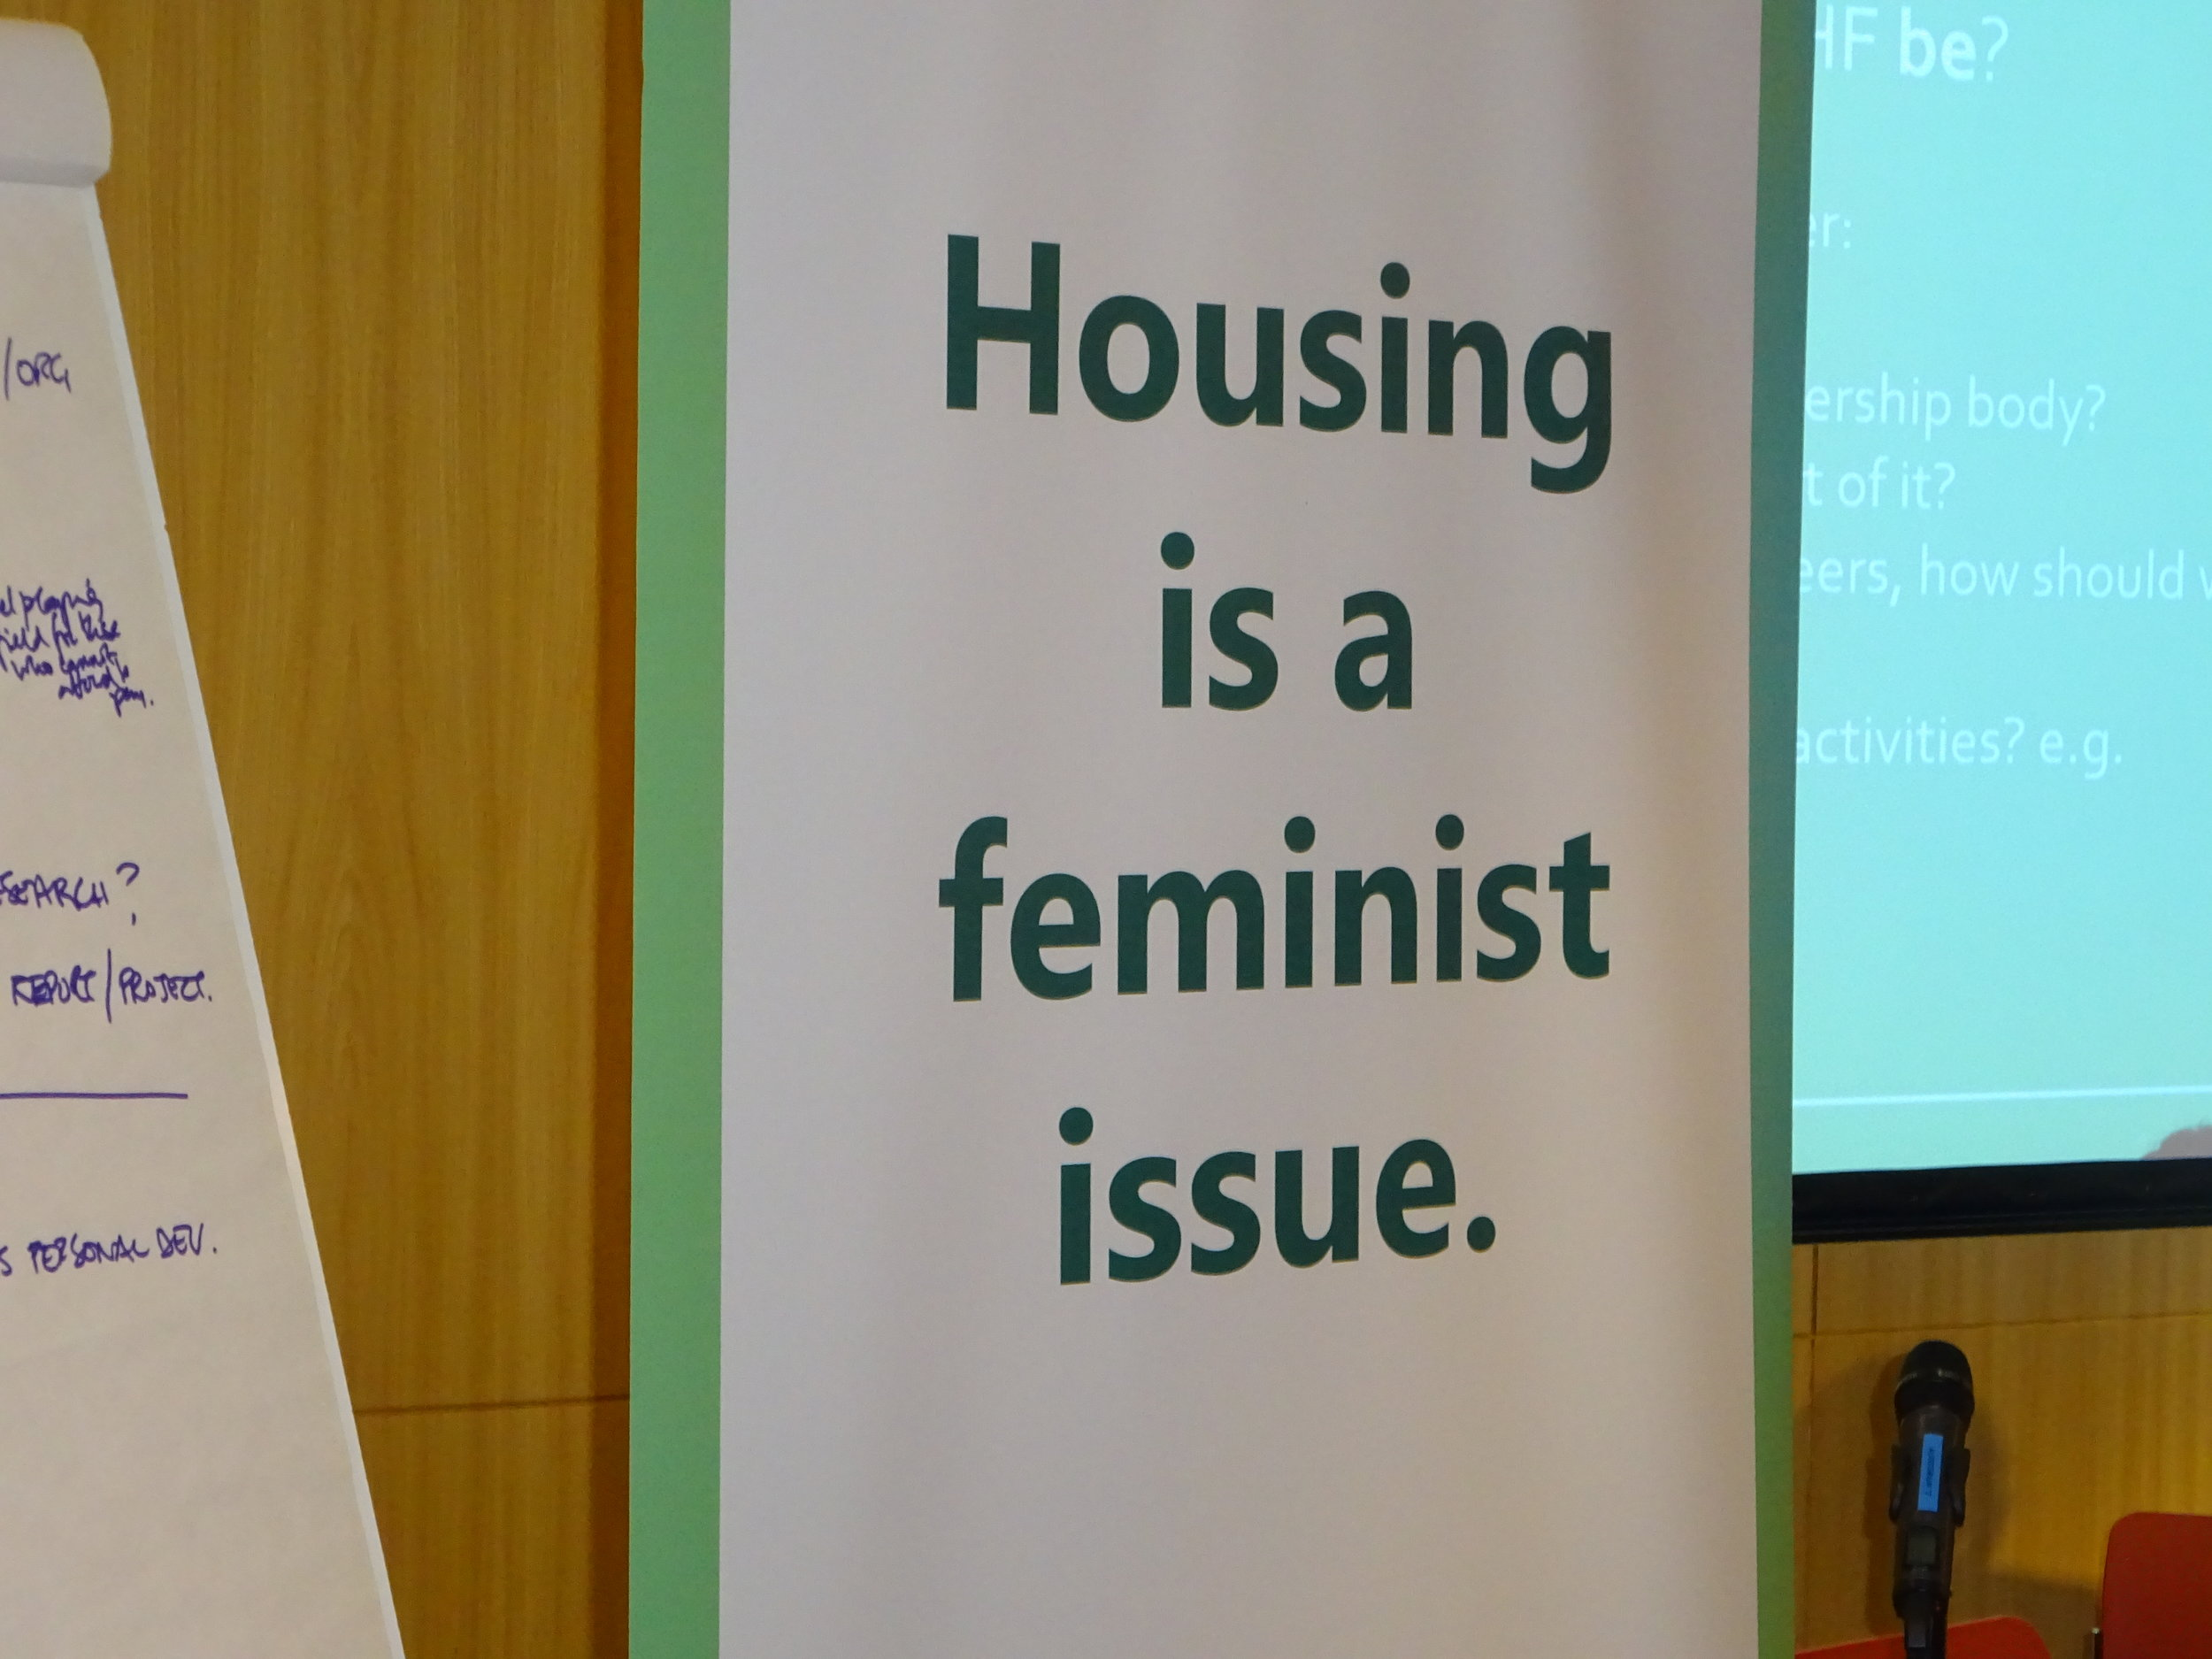 Our Mission - The Women's Housing Forum strives to raise awareness of the links between women's housing needs and gender inequality.We encourage social housing providers and wider society to work together to tackle these issues.